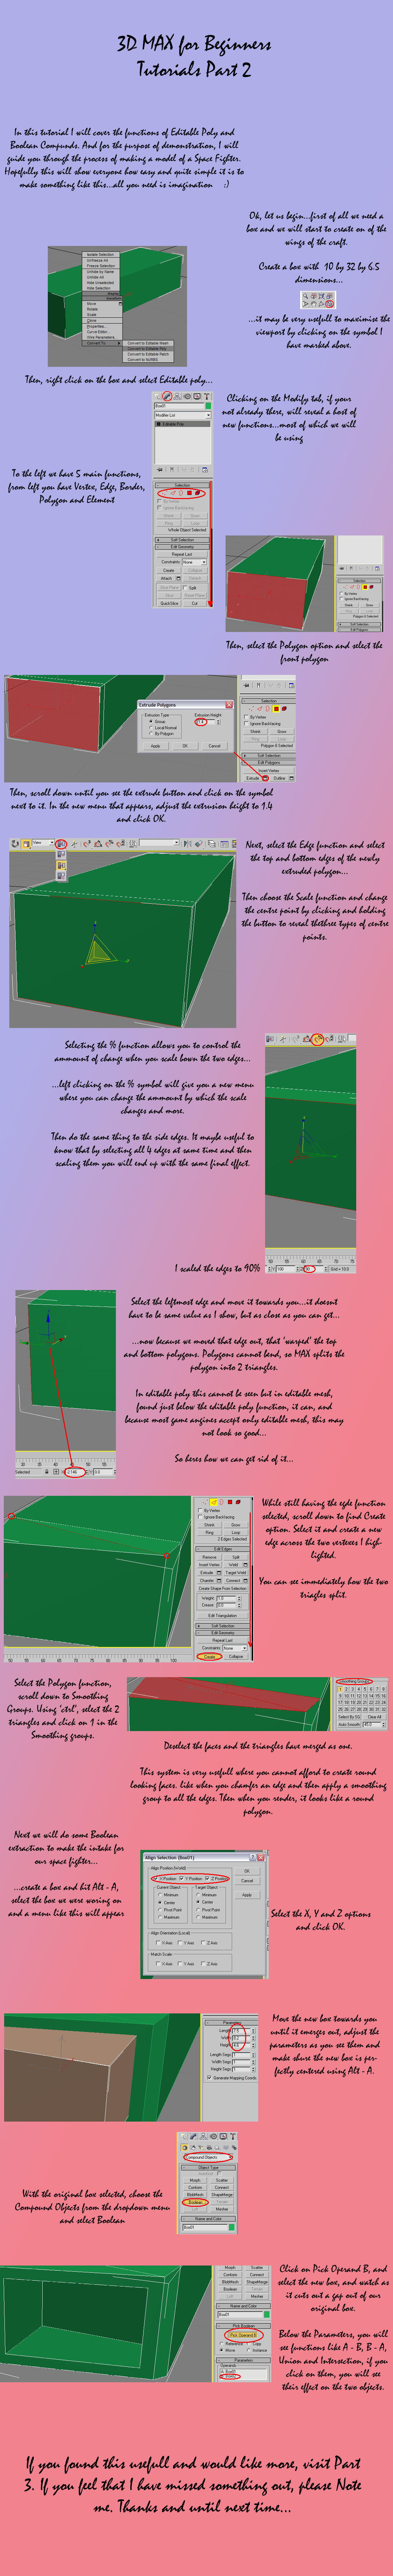 3d max tutorials part 2 by ulyses on deviantart for 3d max lessons for beginners